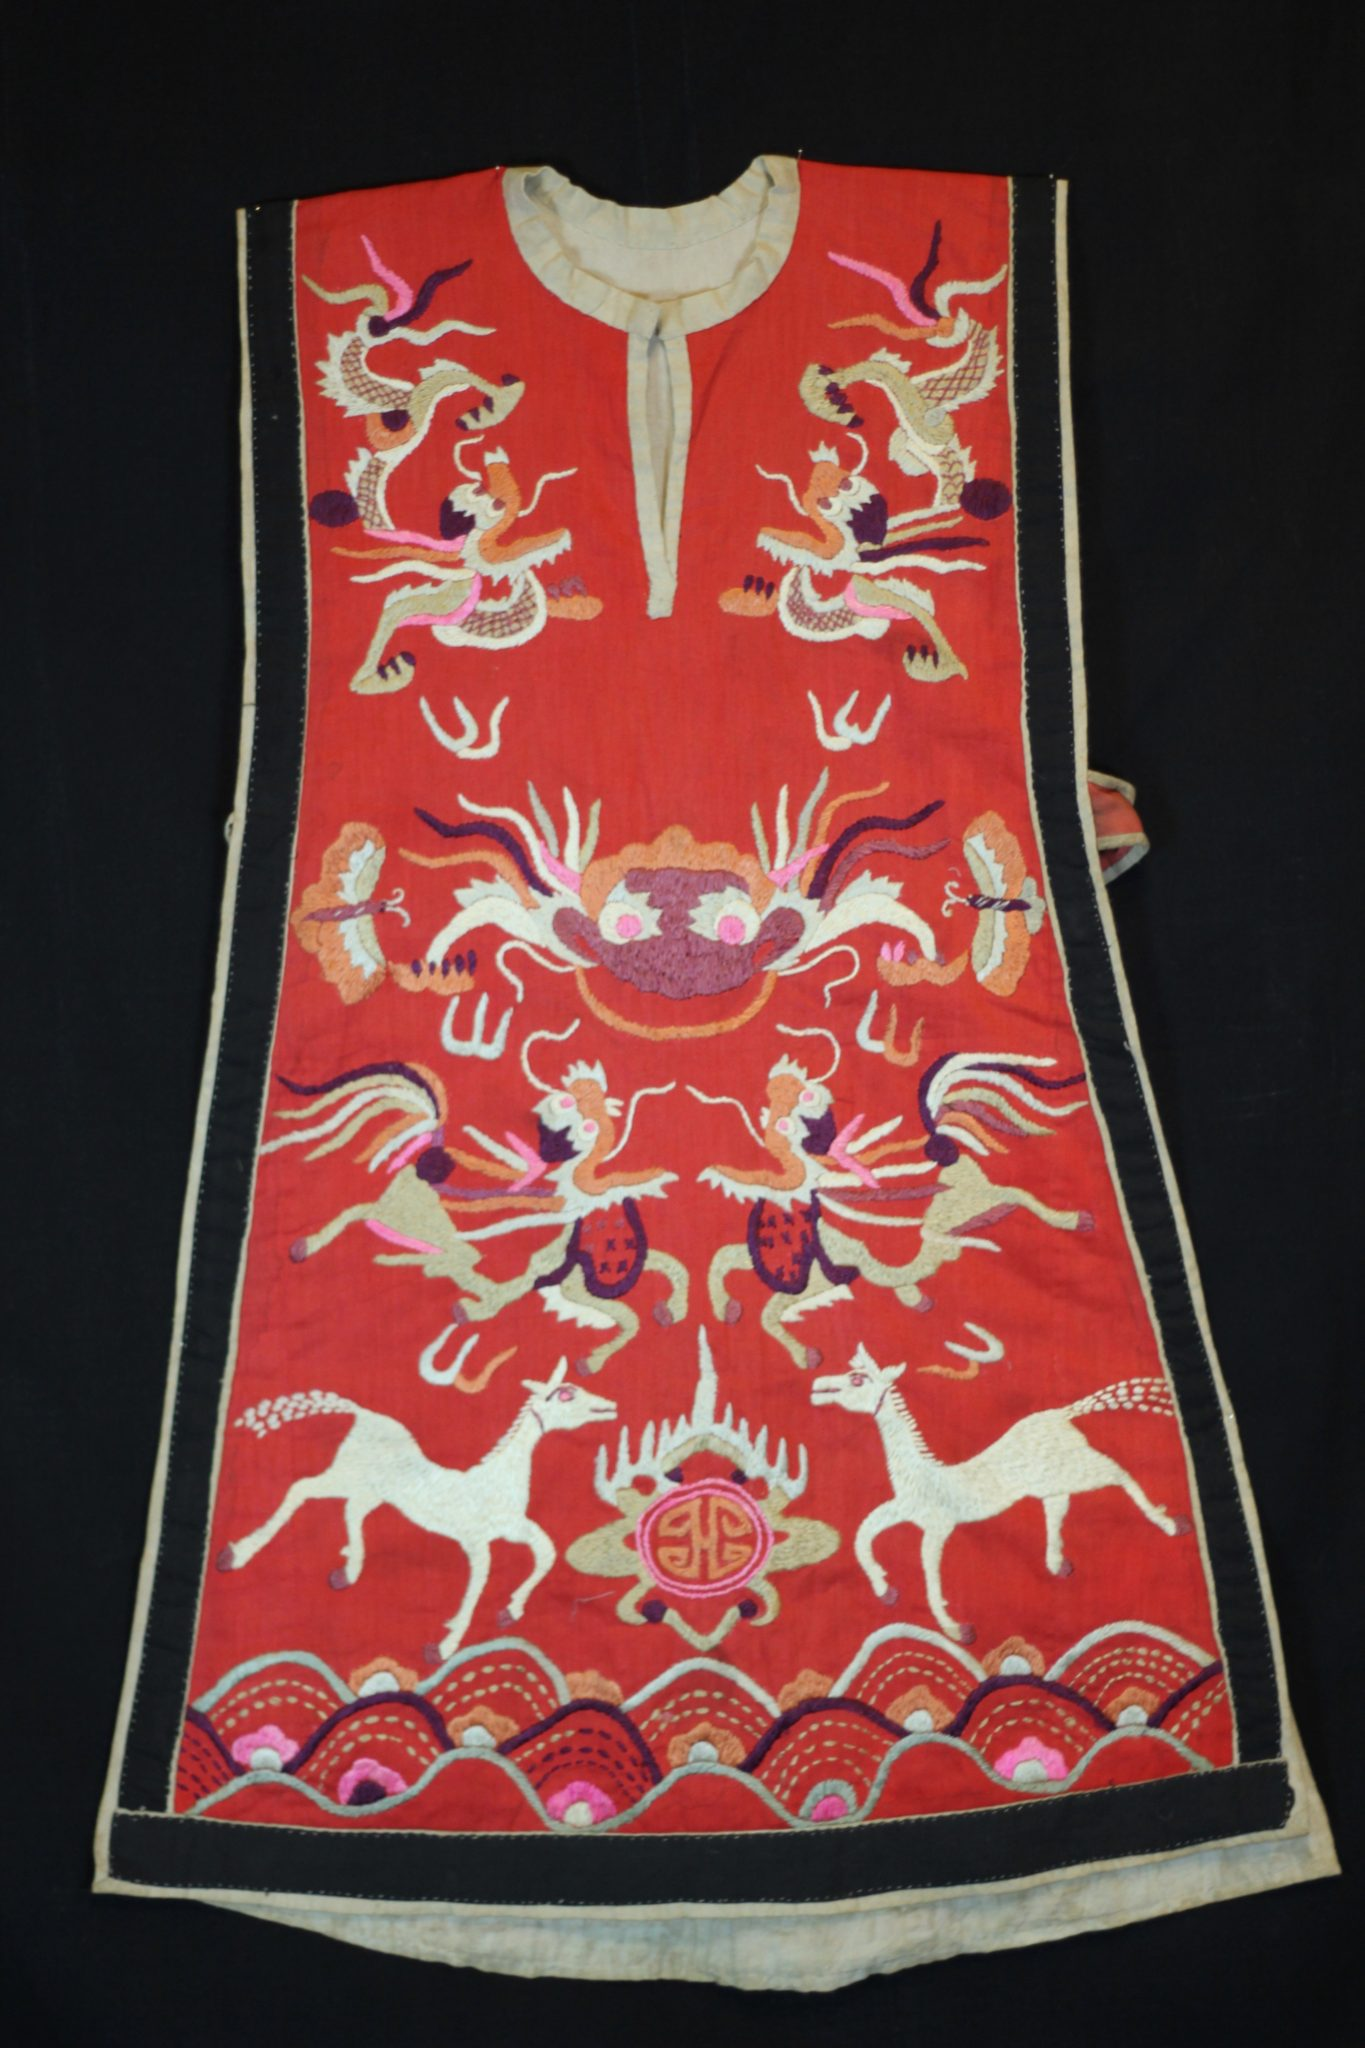 "Dragon Tunic Ritual Costume, Vietnam, Tight Trouser Yao people, Mid 20th c, Cotton, silk embroidery. Worn only by high level shaman. The motif typically includes all the deities of heaven to clothe the shaman in the protection of the universe. Not a vain adornment, it is a reminder of man's place in the hierarchical order. Originally a female costume. Long ago shamans were women and men the providers. Not being encumbered by childbirth and rearing, men replaces women as shamans but retained this part of the sacred costume. 34"" x 24"", $2800"